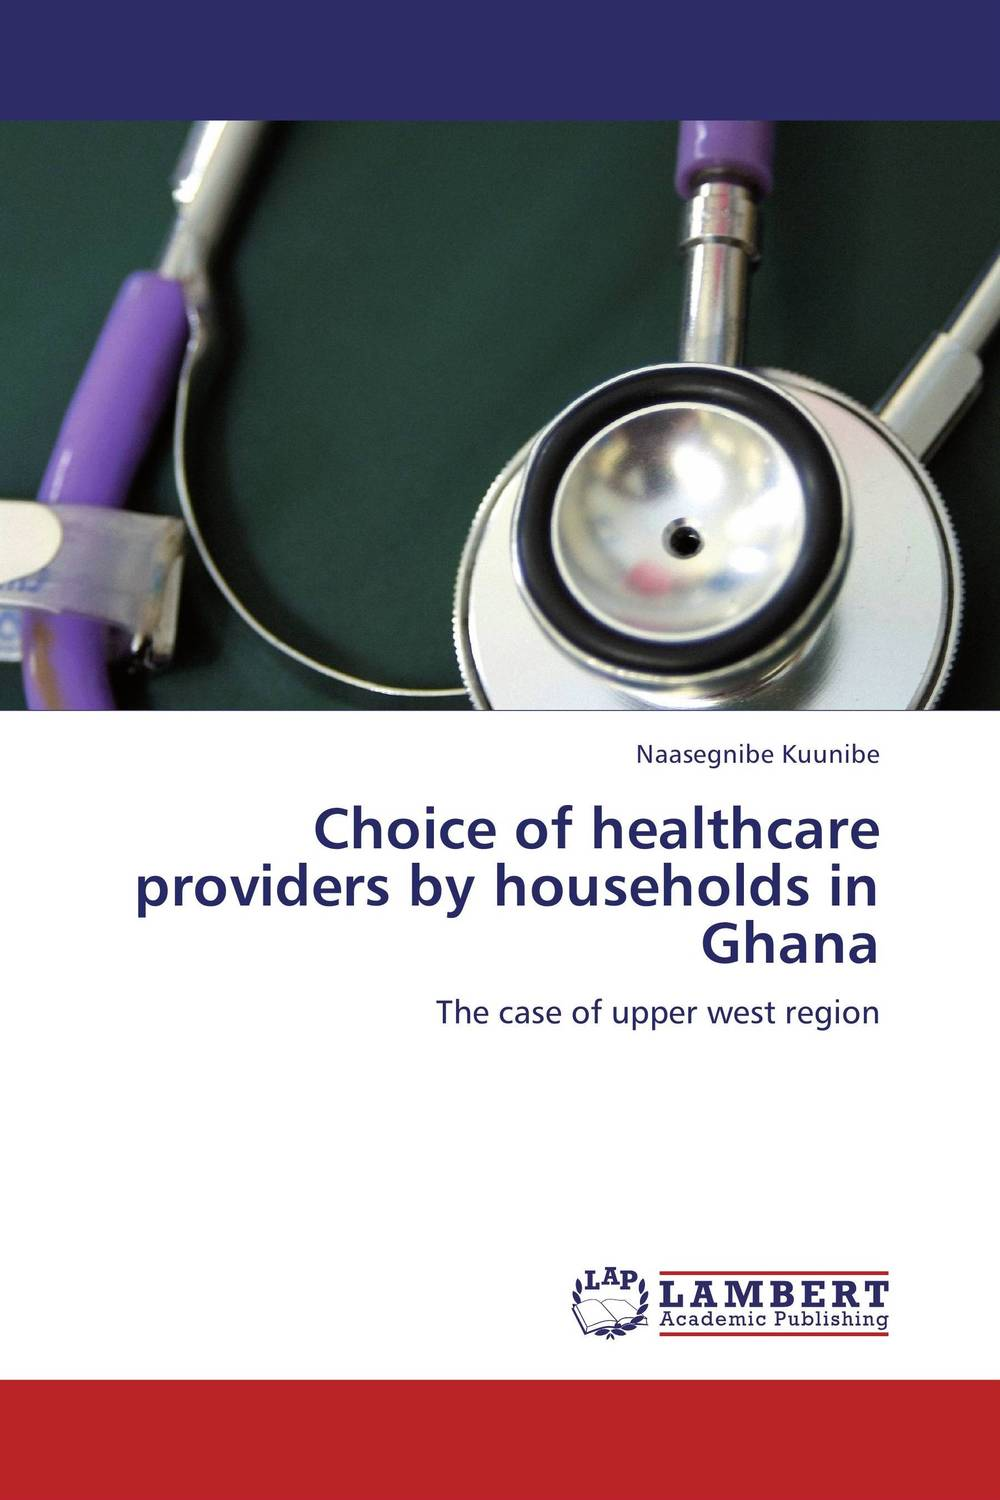 Choice of healthcare providers by households in Ghana examining trust in healthcare